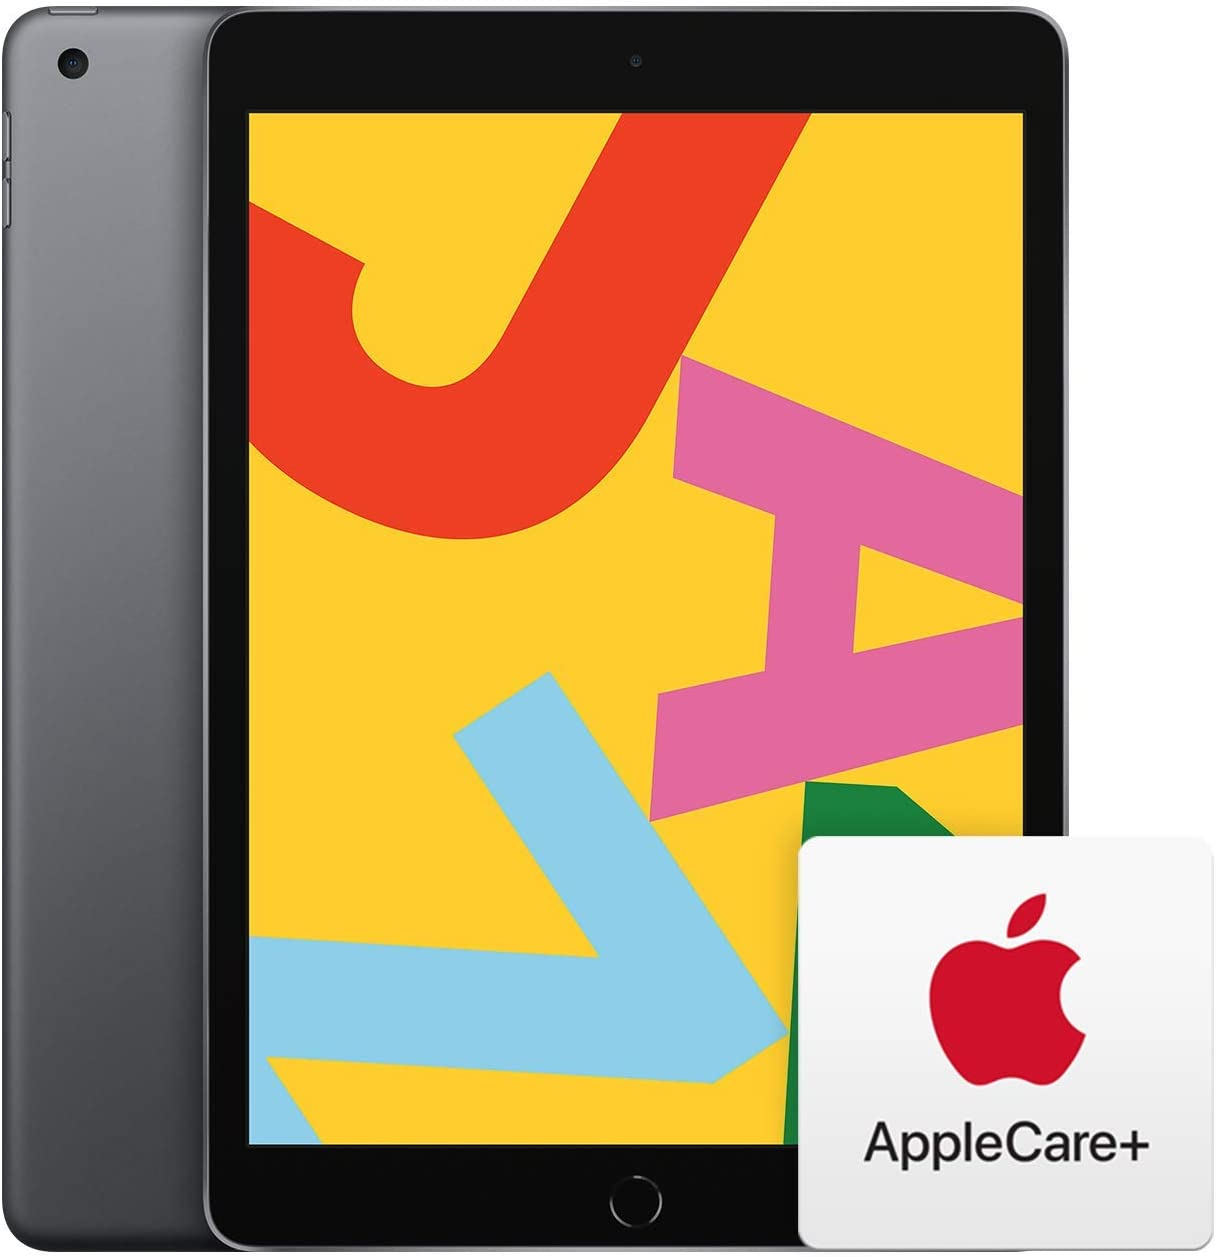 Apple iPad (10.2-Inch, Wi-Fi, 32GB) - Space Gray (Previous Model) with AppleCare+ Bundle